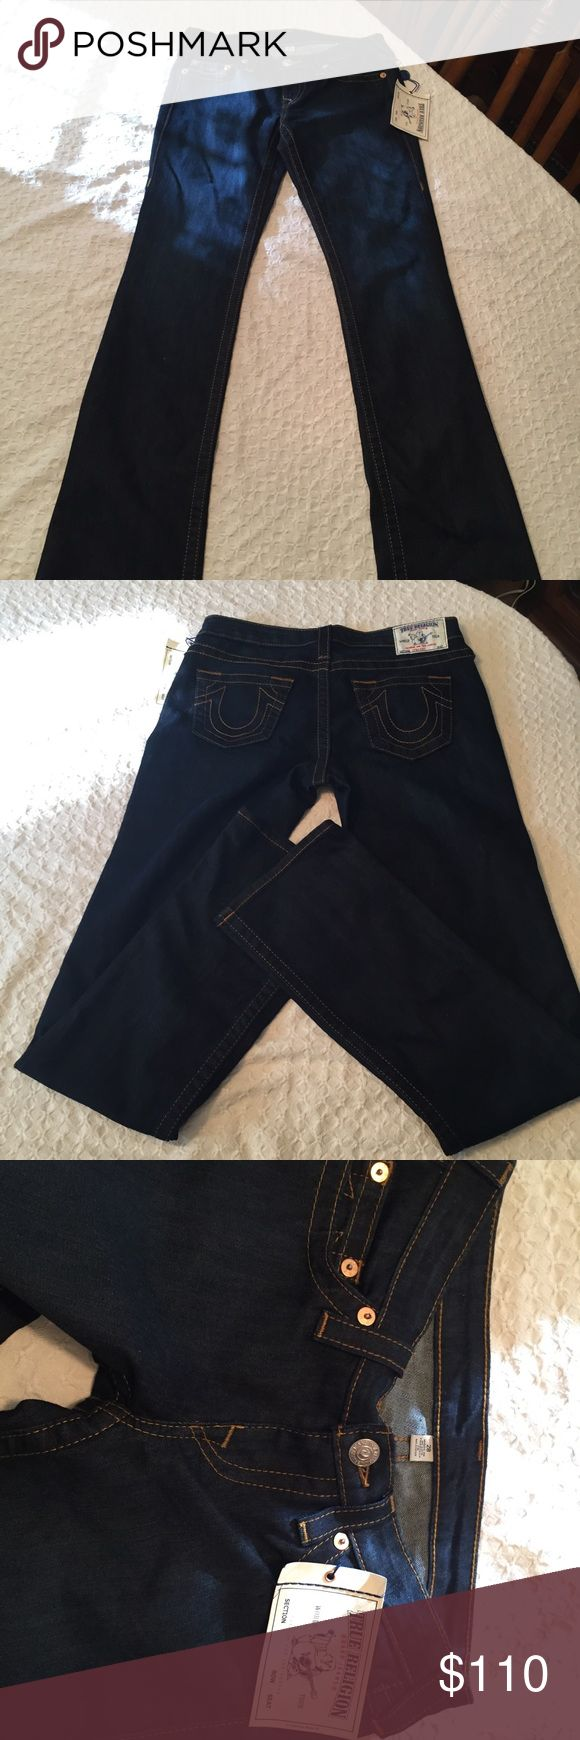 NWT True Religion Jeans 👖 100% AUTHENTIC True Religion Women's Jeans. Brand NEW with tags included. Dark wash. Lonestar Straight Jeans. Size 28. Materials: 74% cotton, 25% polyester & 1% spandex. Made in Mexico. True Religion Jeans Straight Leg